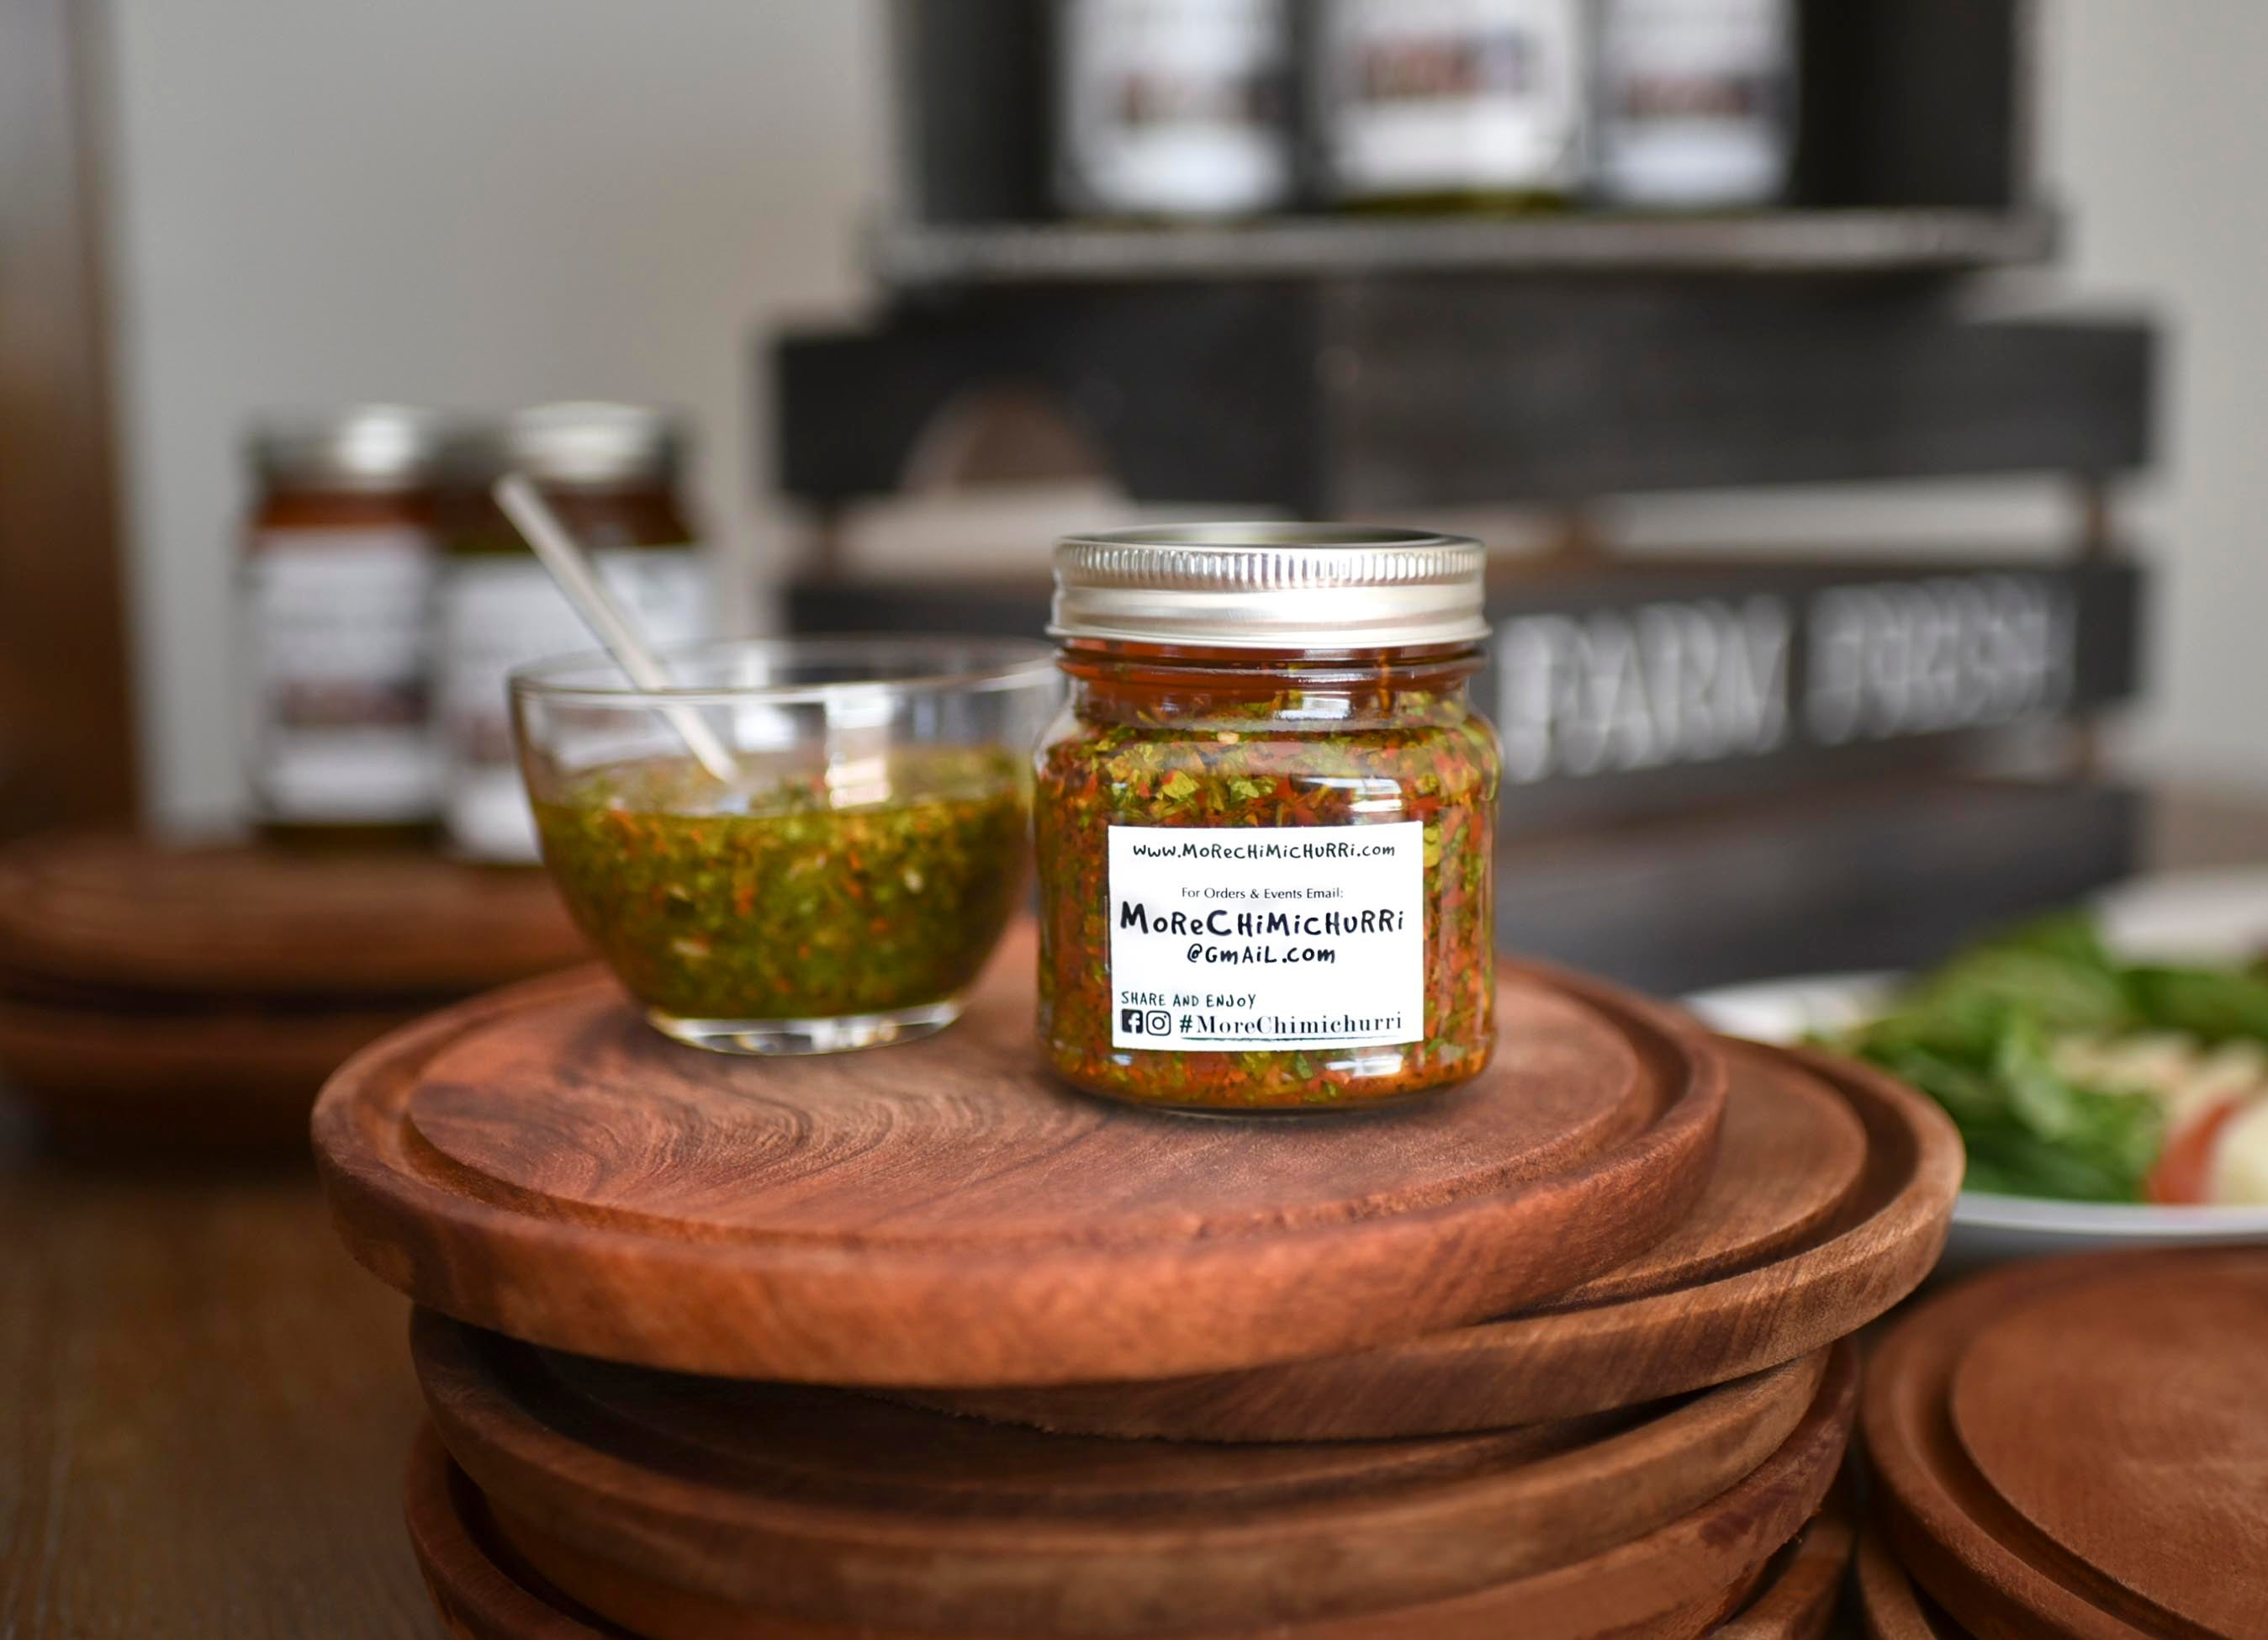 Medium Spice Chimichurri (8oz)